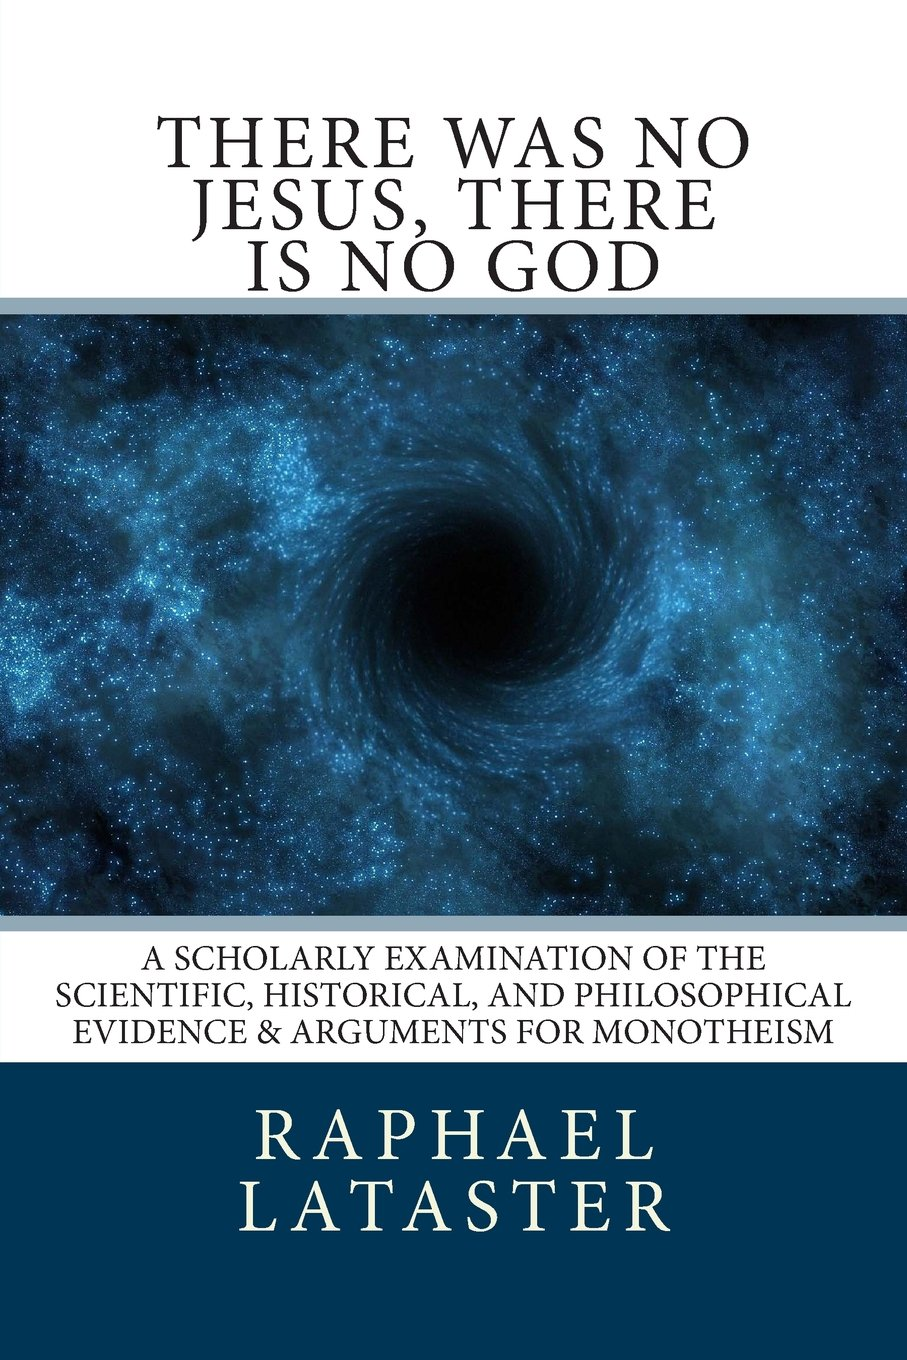 Cover of Raphael Lataster's new book There Was No Jesus, There Is No God. Cover art looks like an artist's rendering of blue spacedust and a black hole sucking everything in.